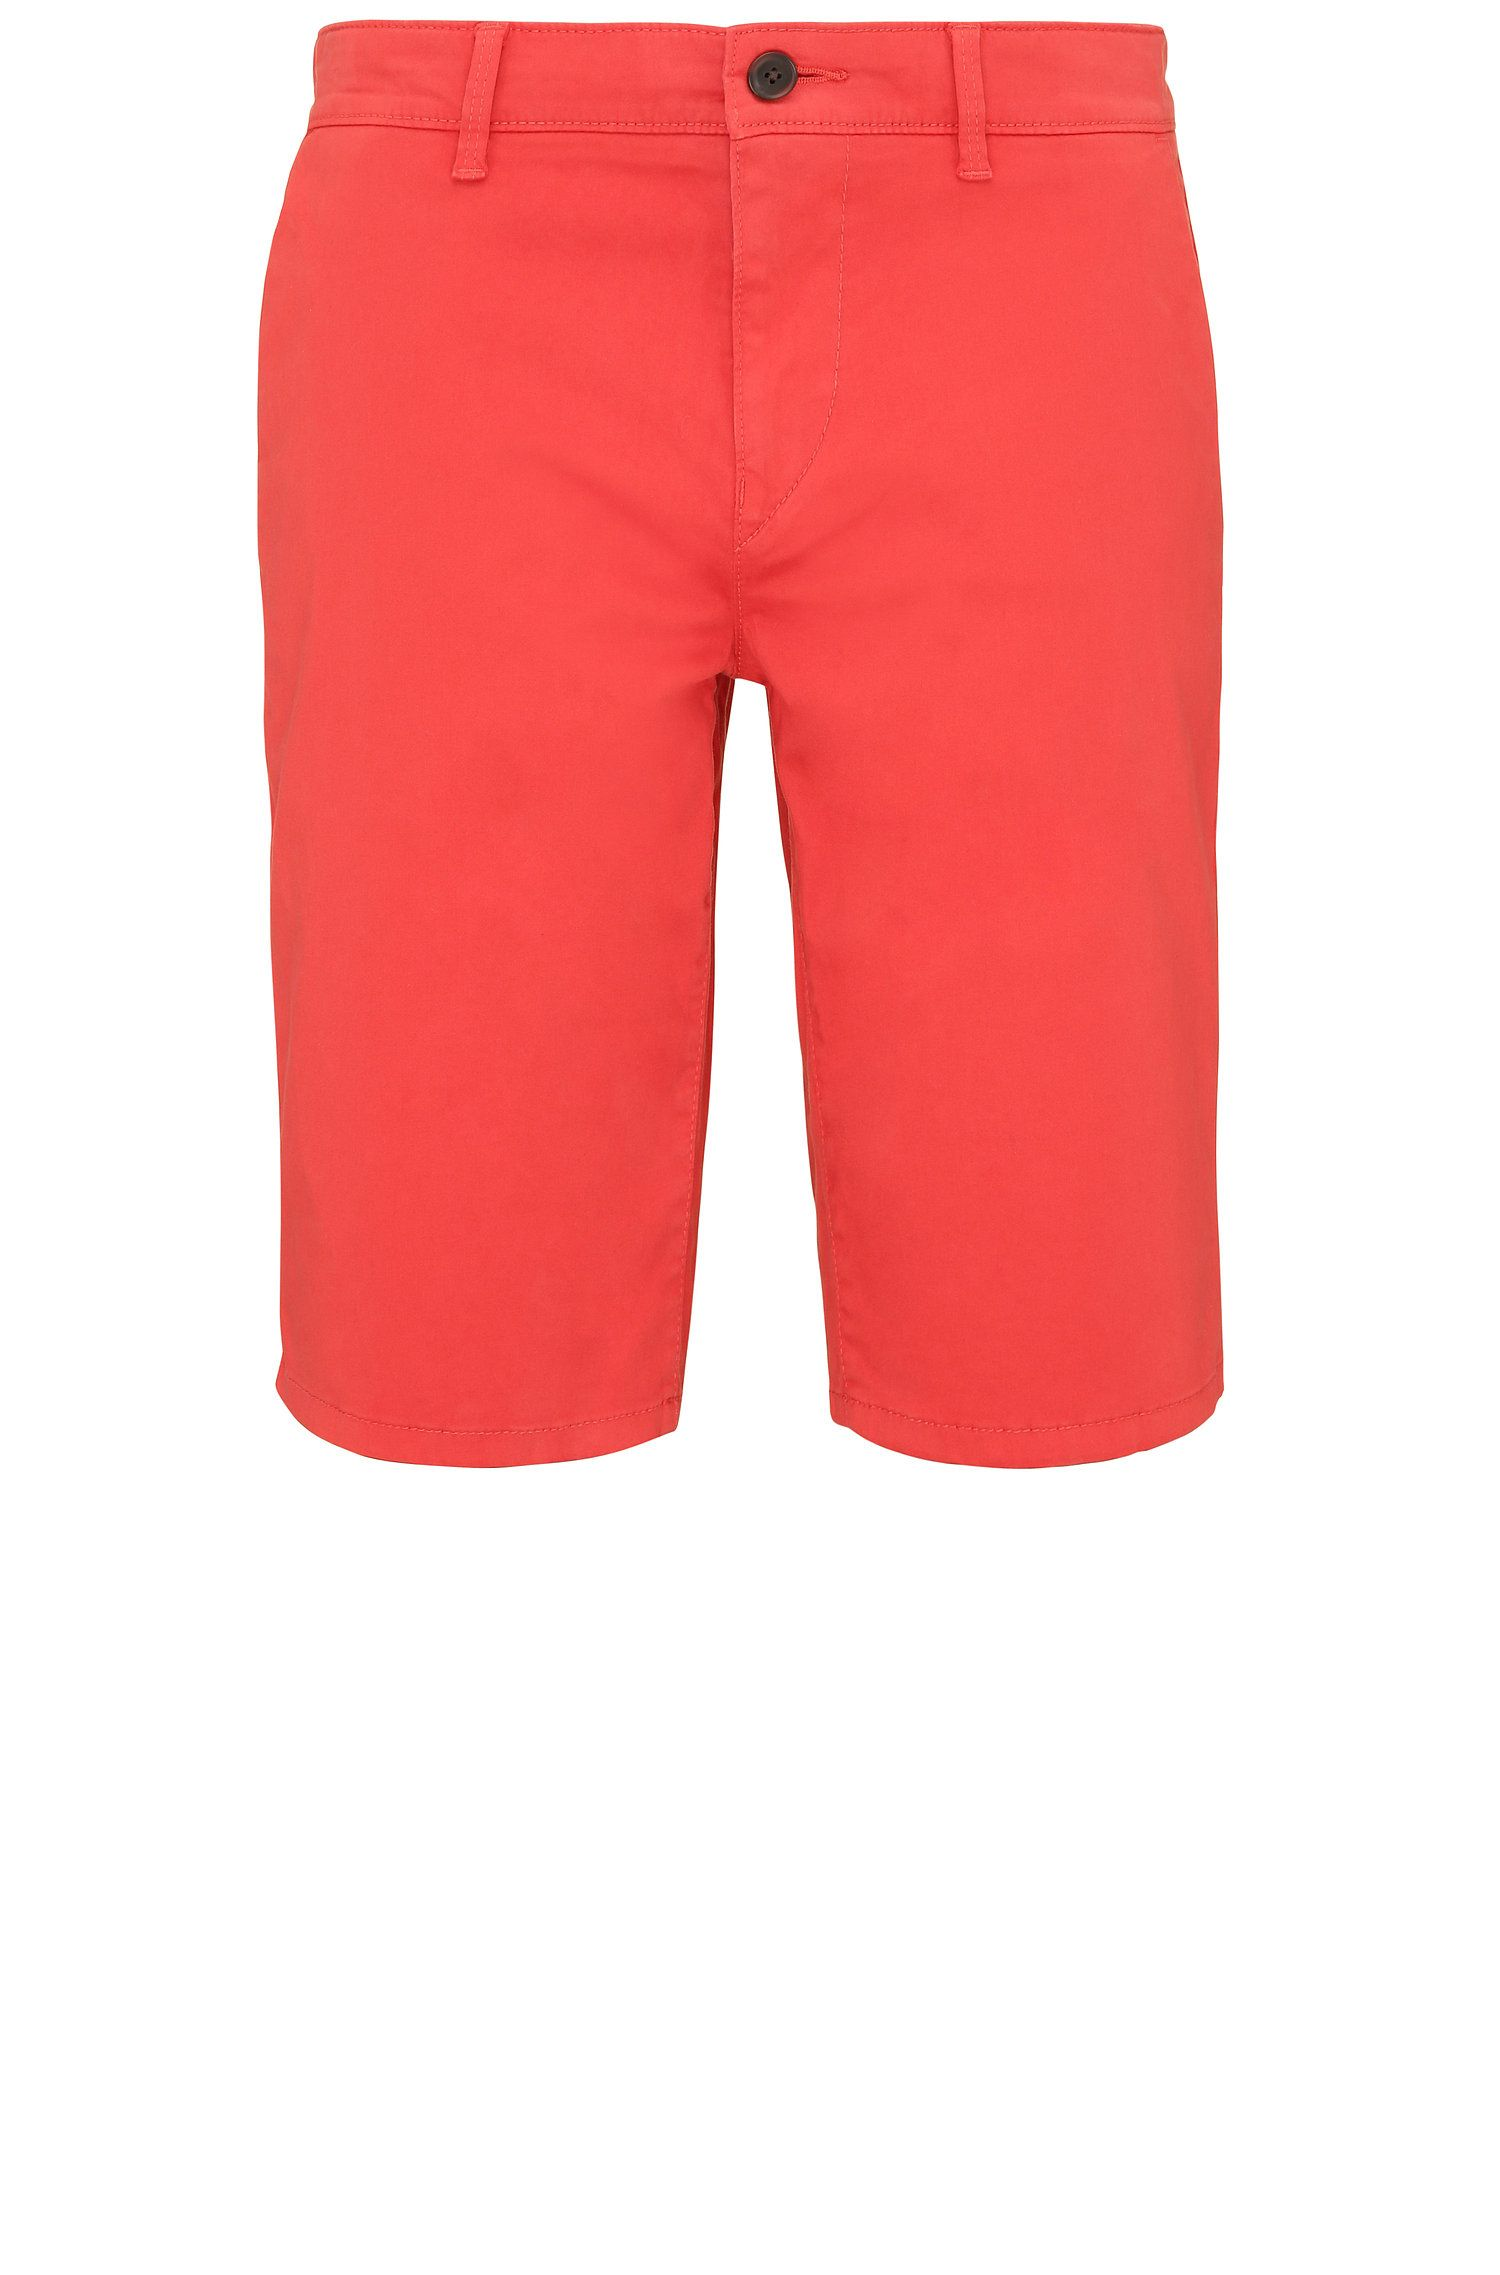 Short Slim Fit en coton stretch de style chino : « Schino-Slim-Shorts-D »